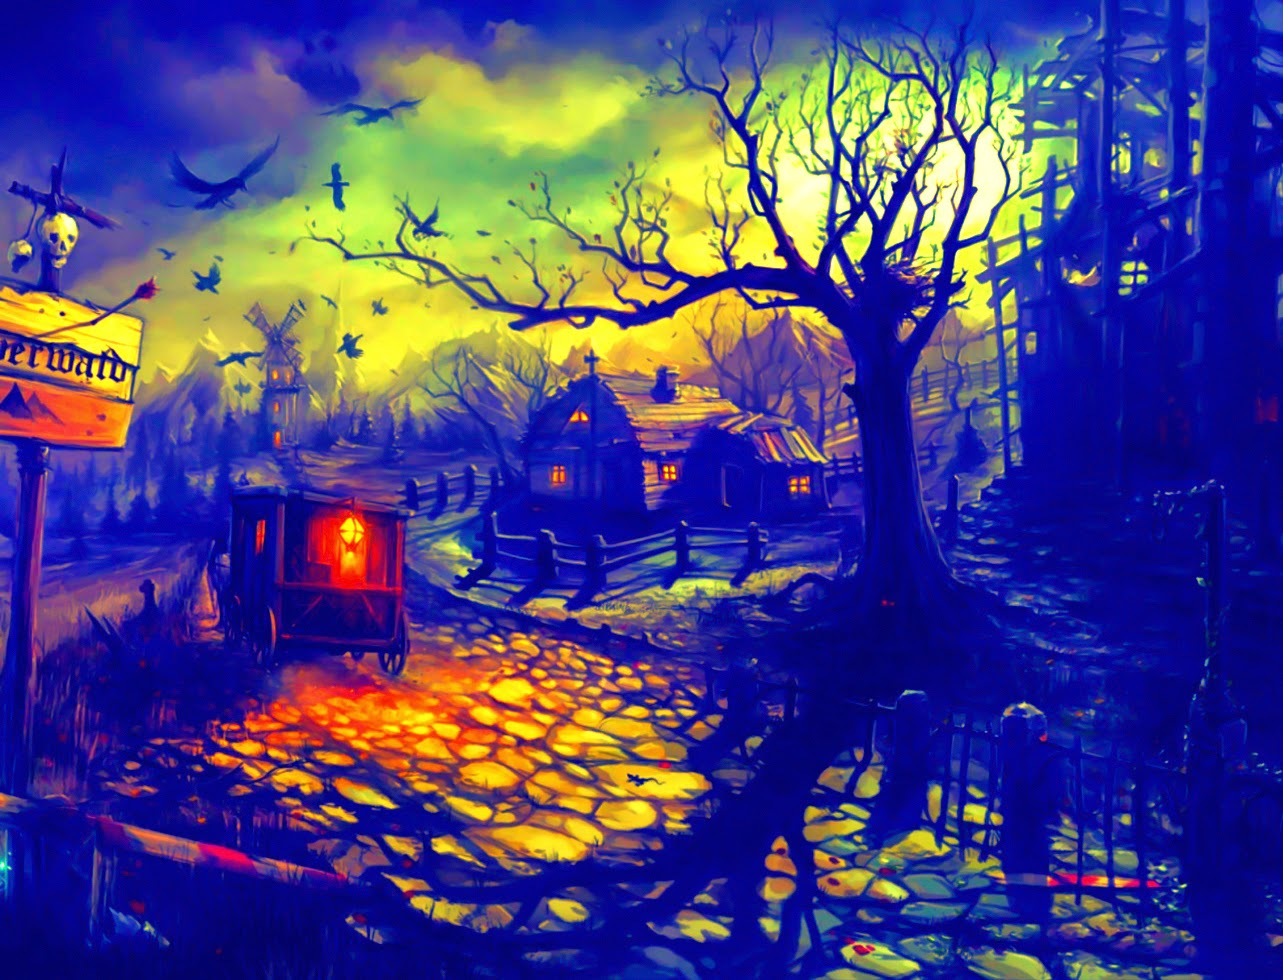 Haunted-halloween-house-in-village-dark-scary-horror-night-image.jpg